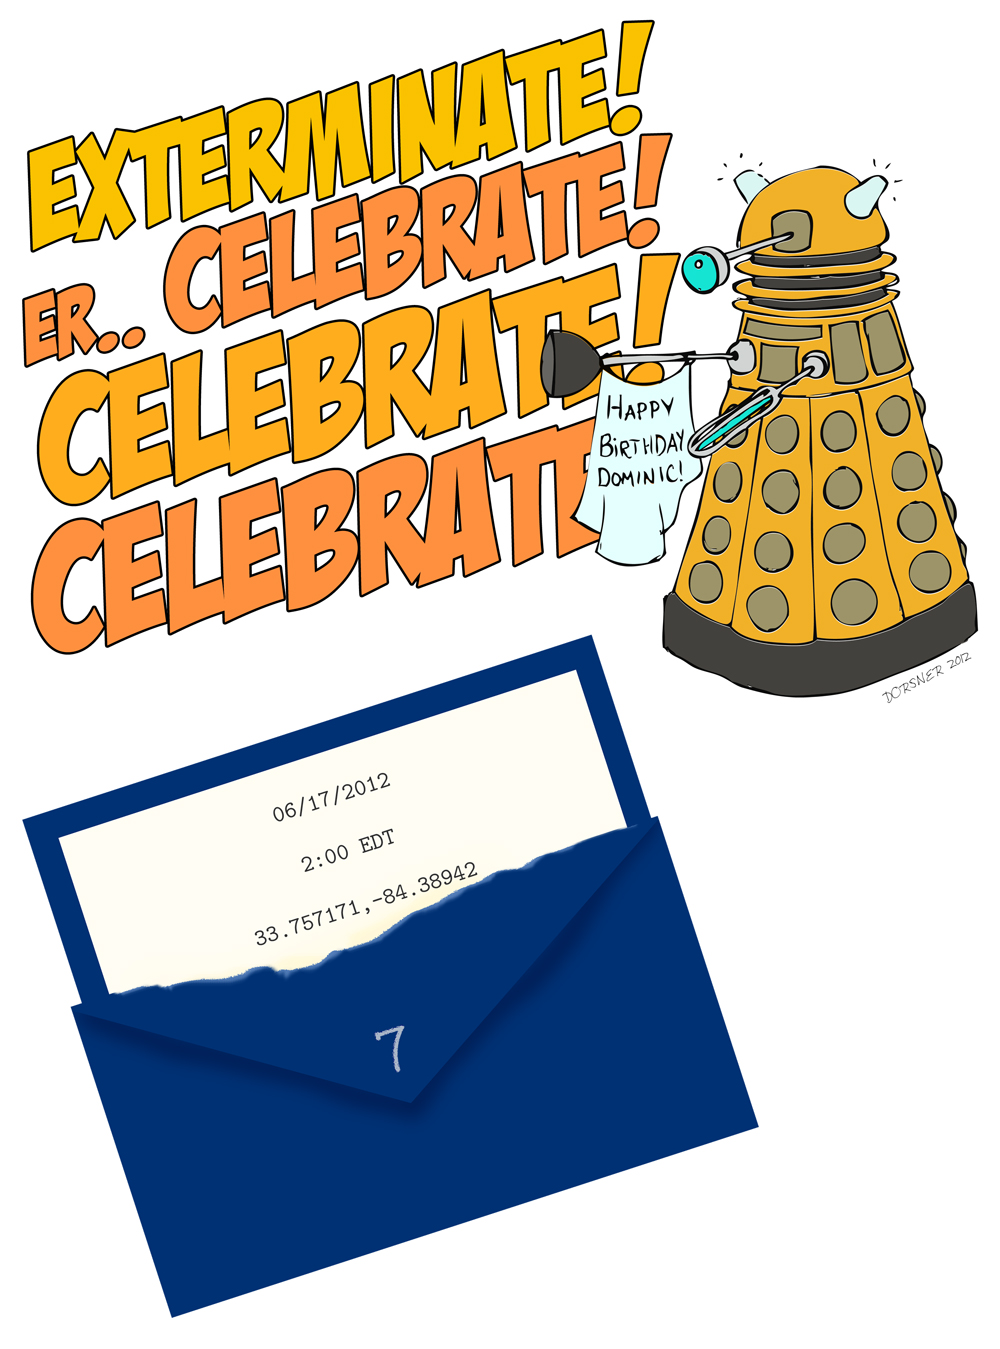 Dr who birthday party invitation downloadable template for Tardis template for cake